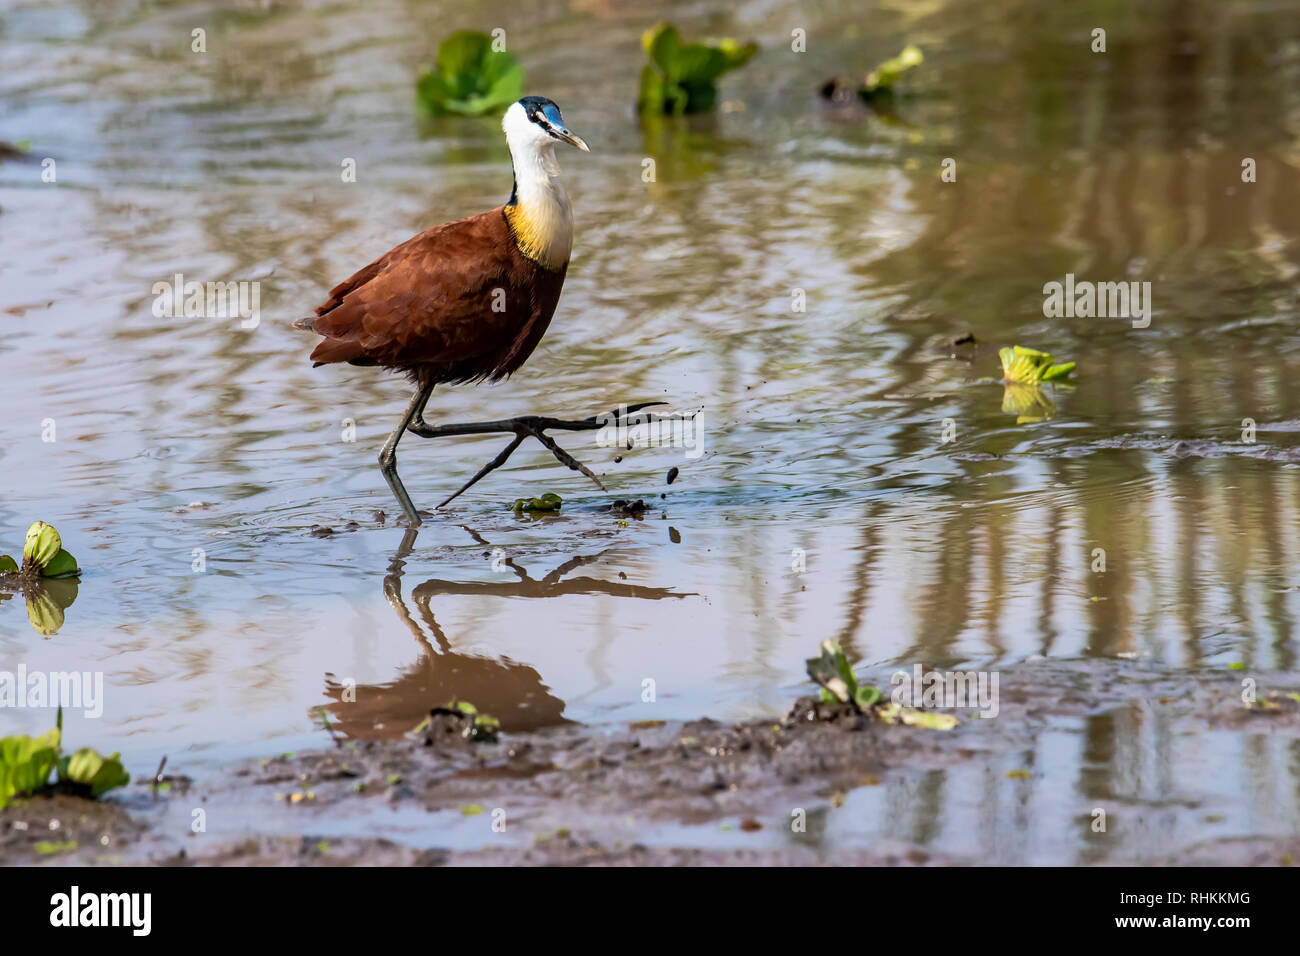 African jacana stand on the water - Stock Image